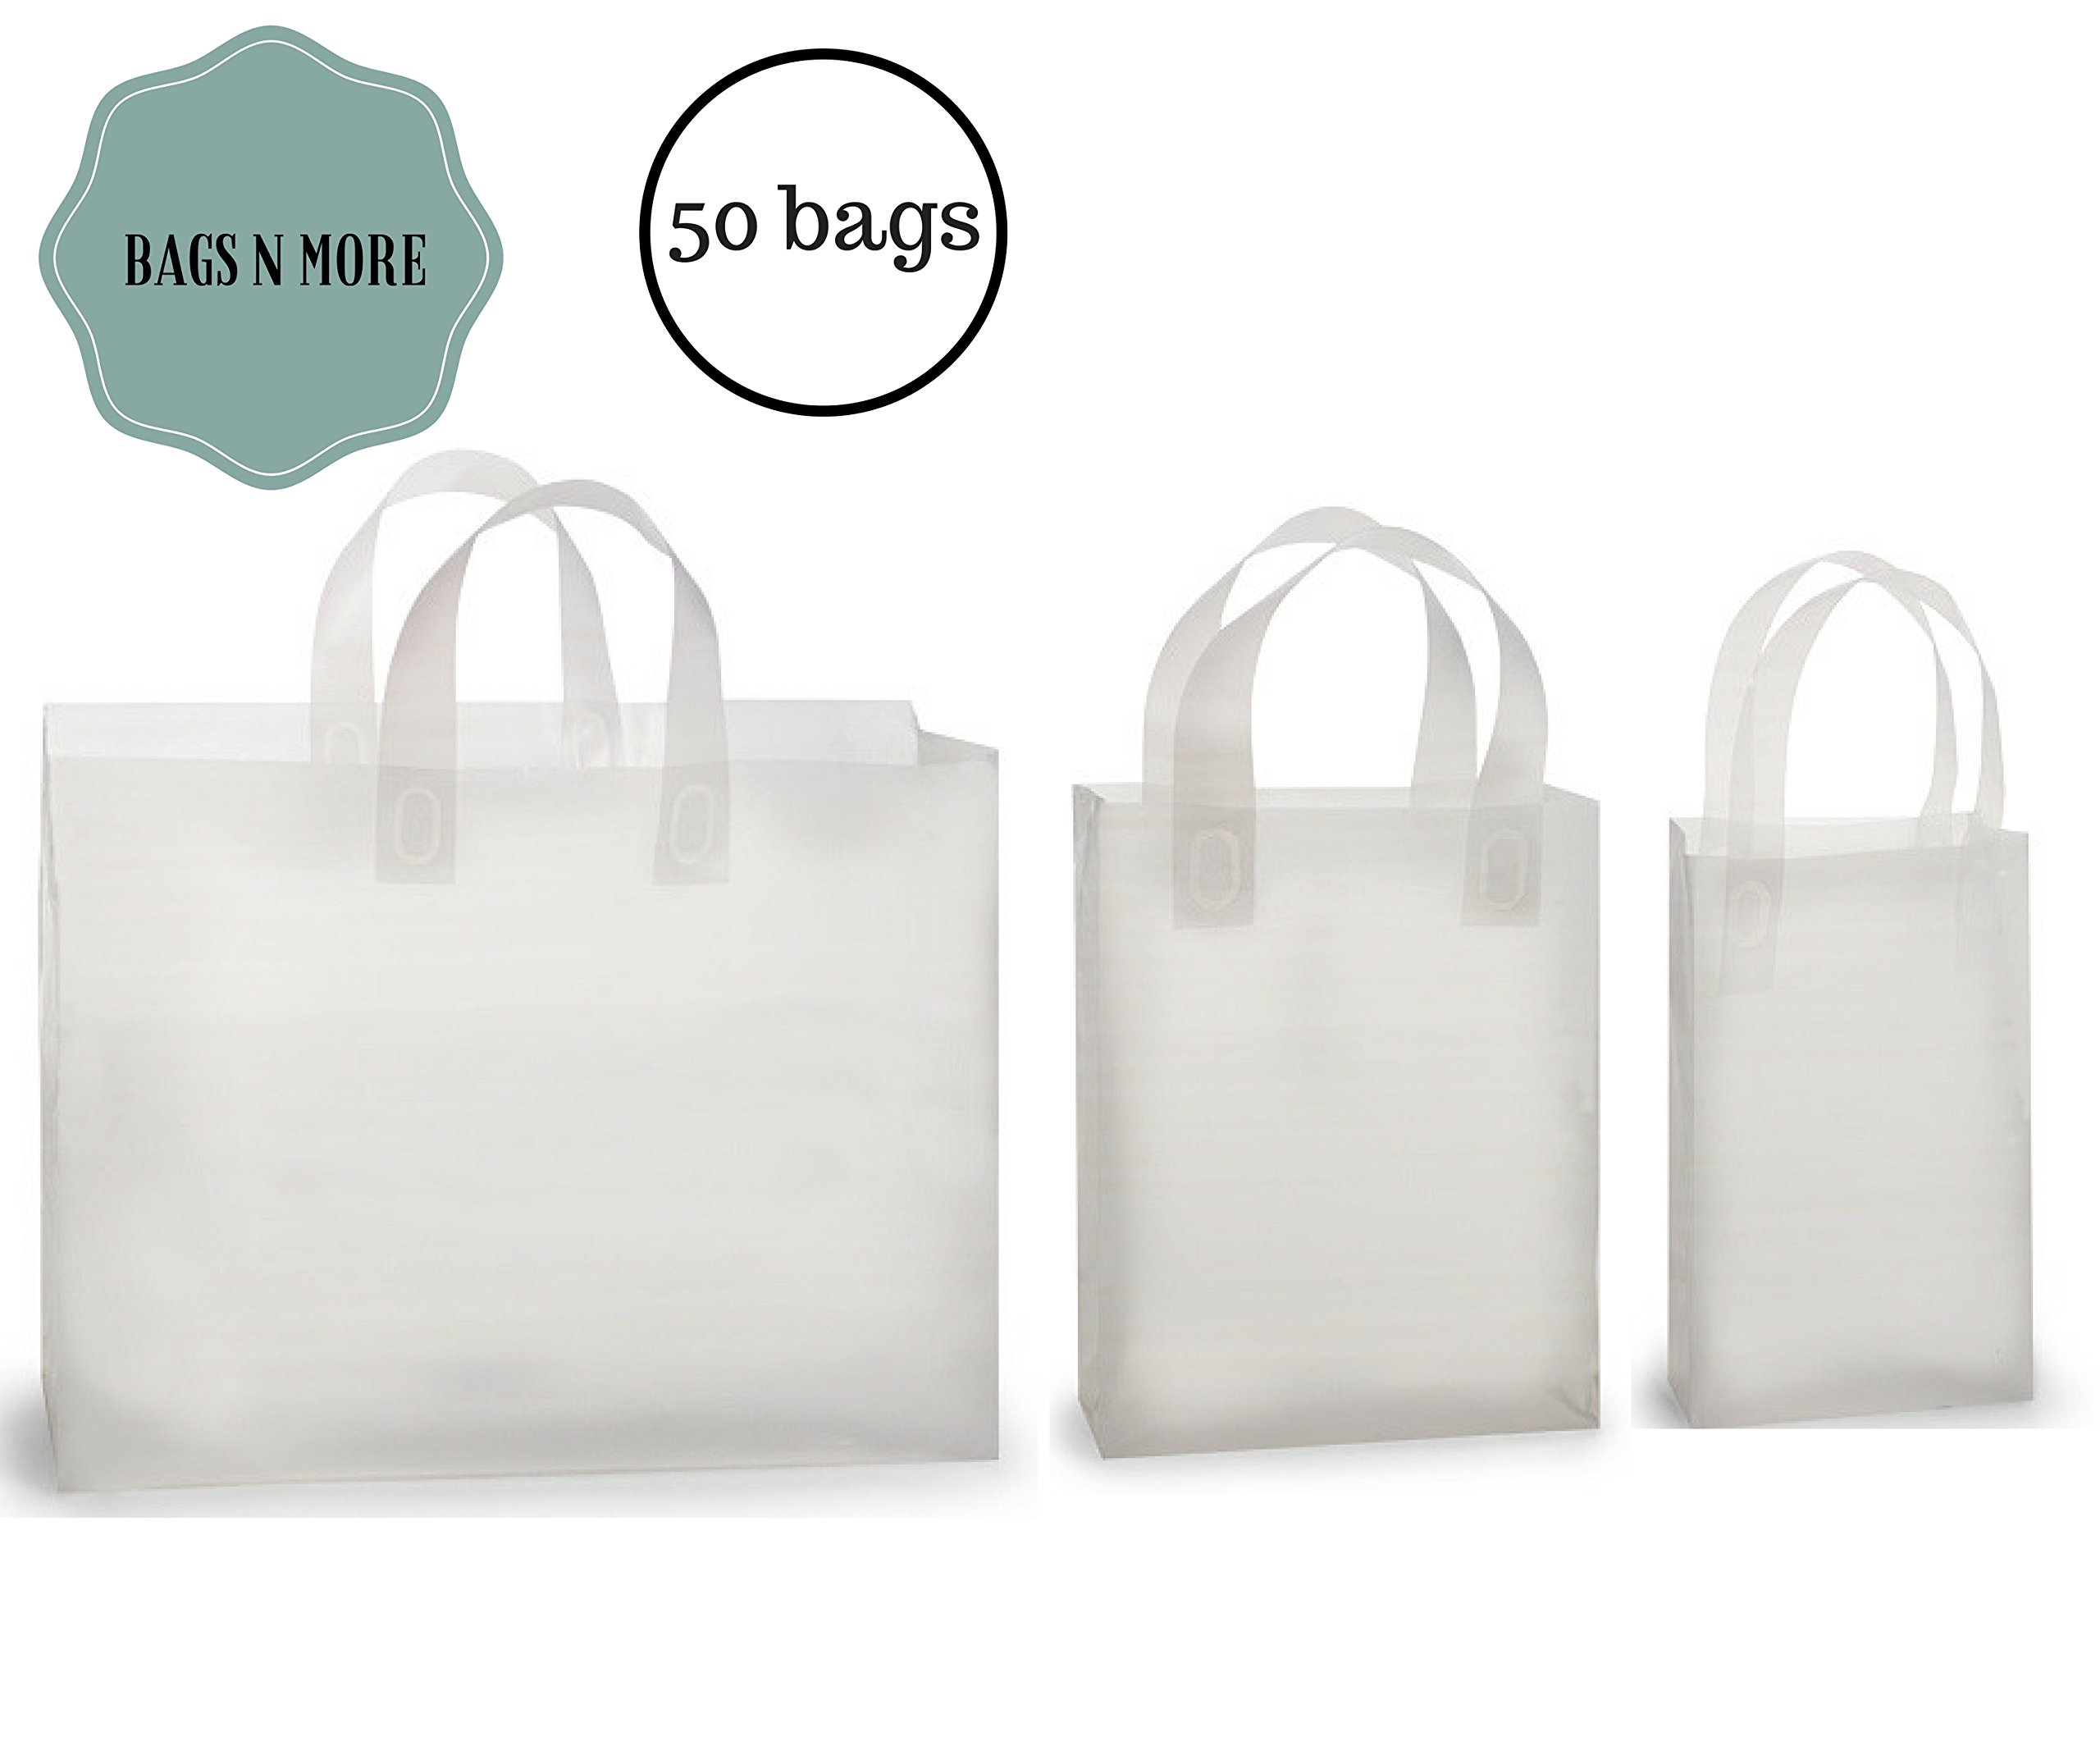 Shopping Bags Small Medium & Large, Clear Gift Bag with Handles, 50 Count Assortment, Gusset with Cardboard for Retail Merchandising